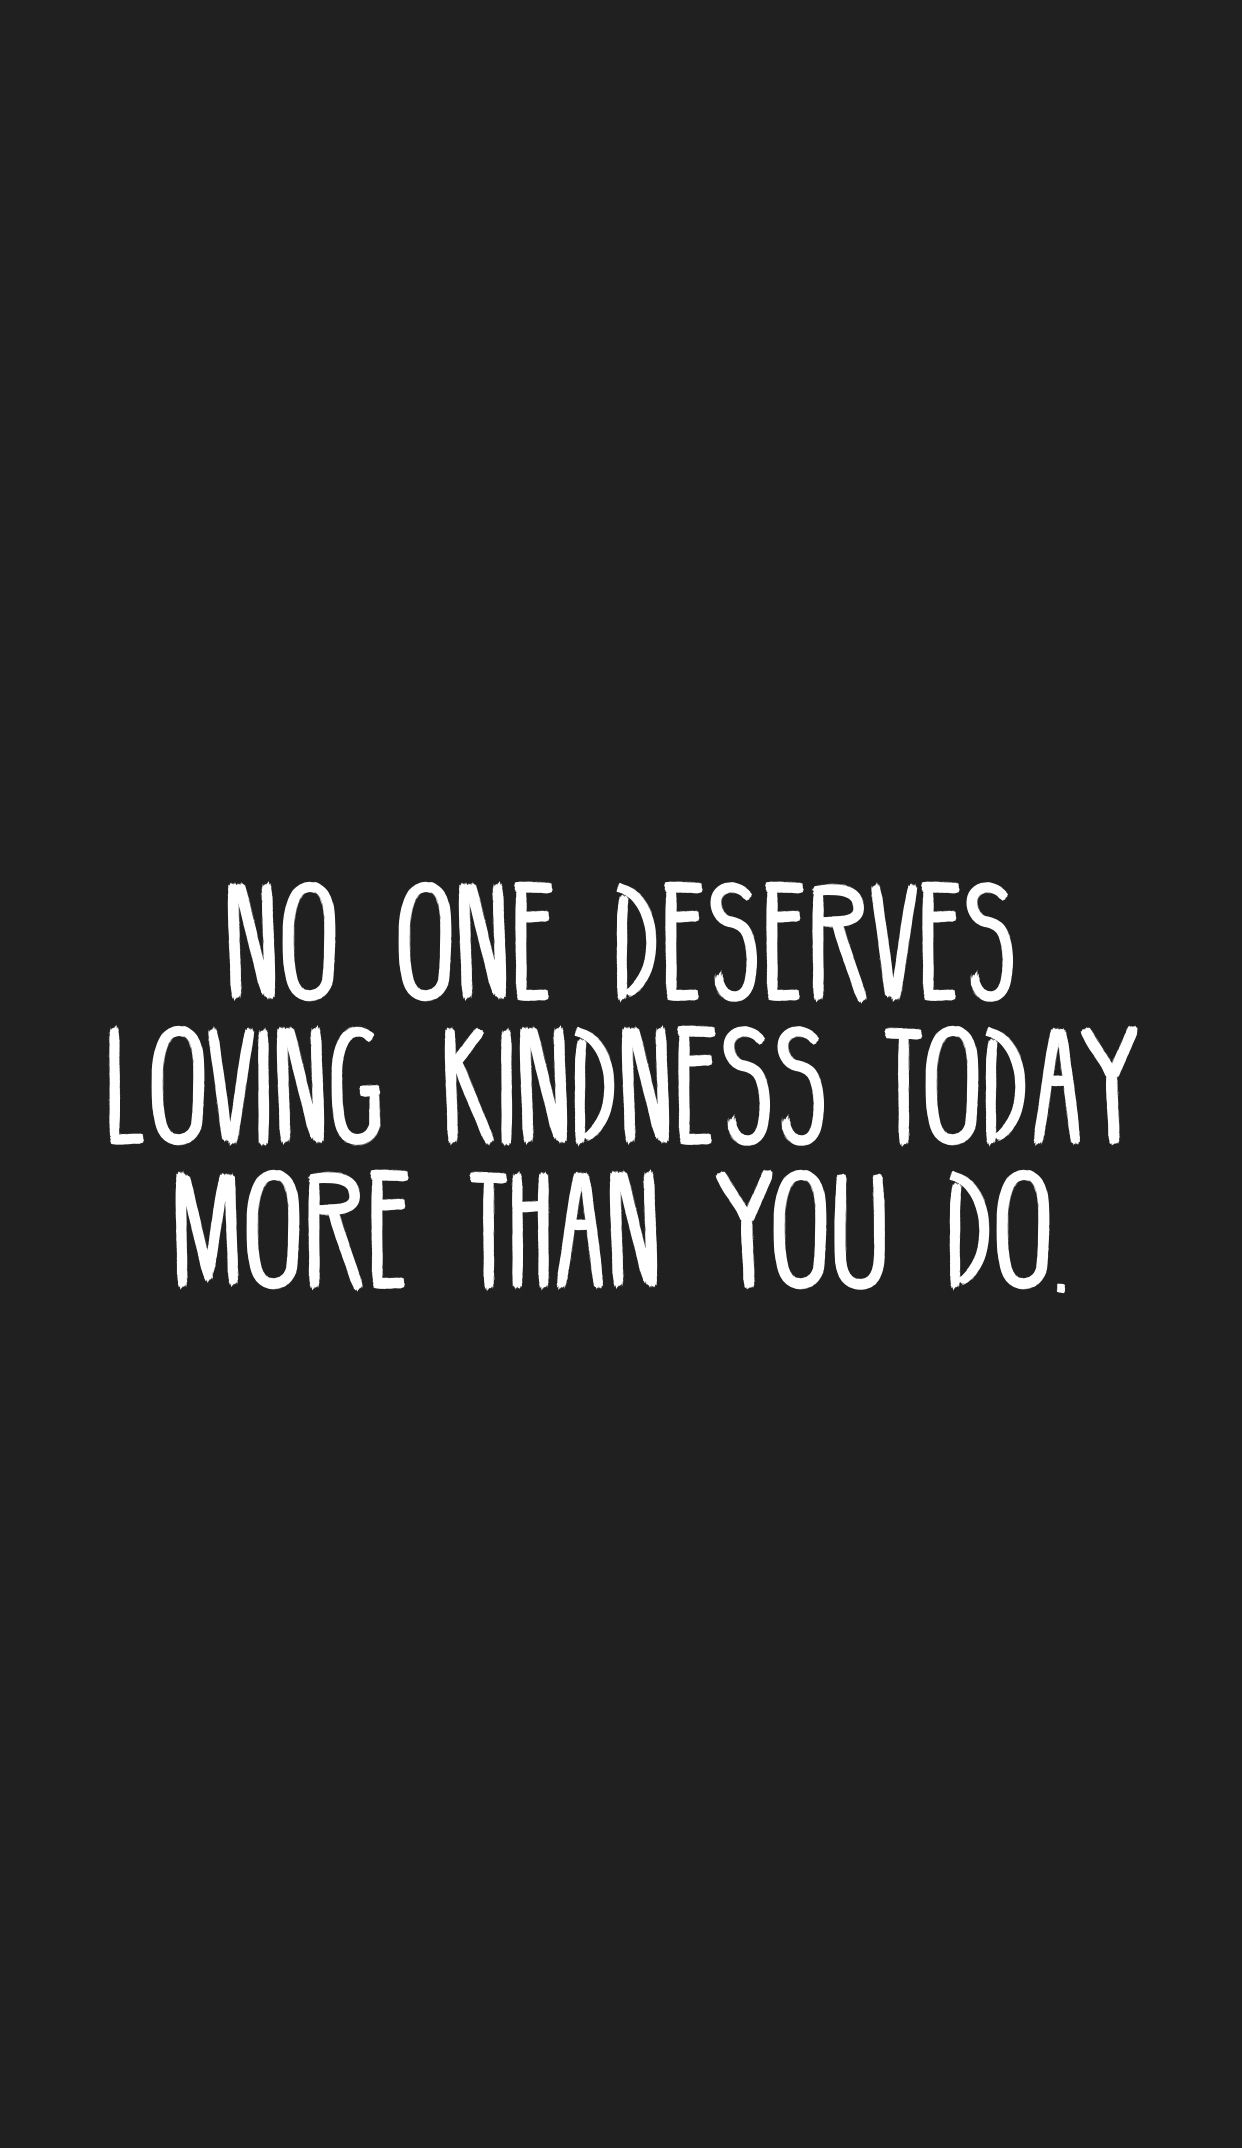 Loving Kindness Quotes No One Deserves Loving Kindness Today More Than You Do •qυσтєѕ